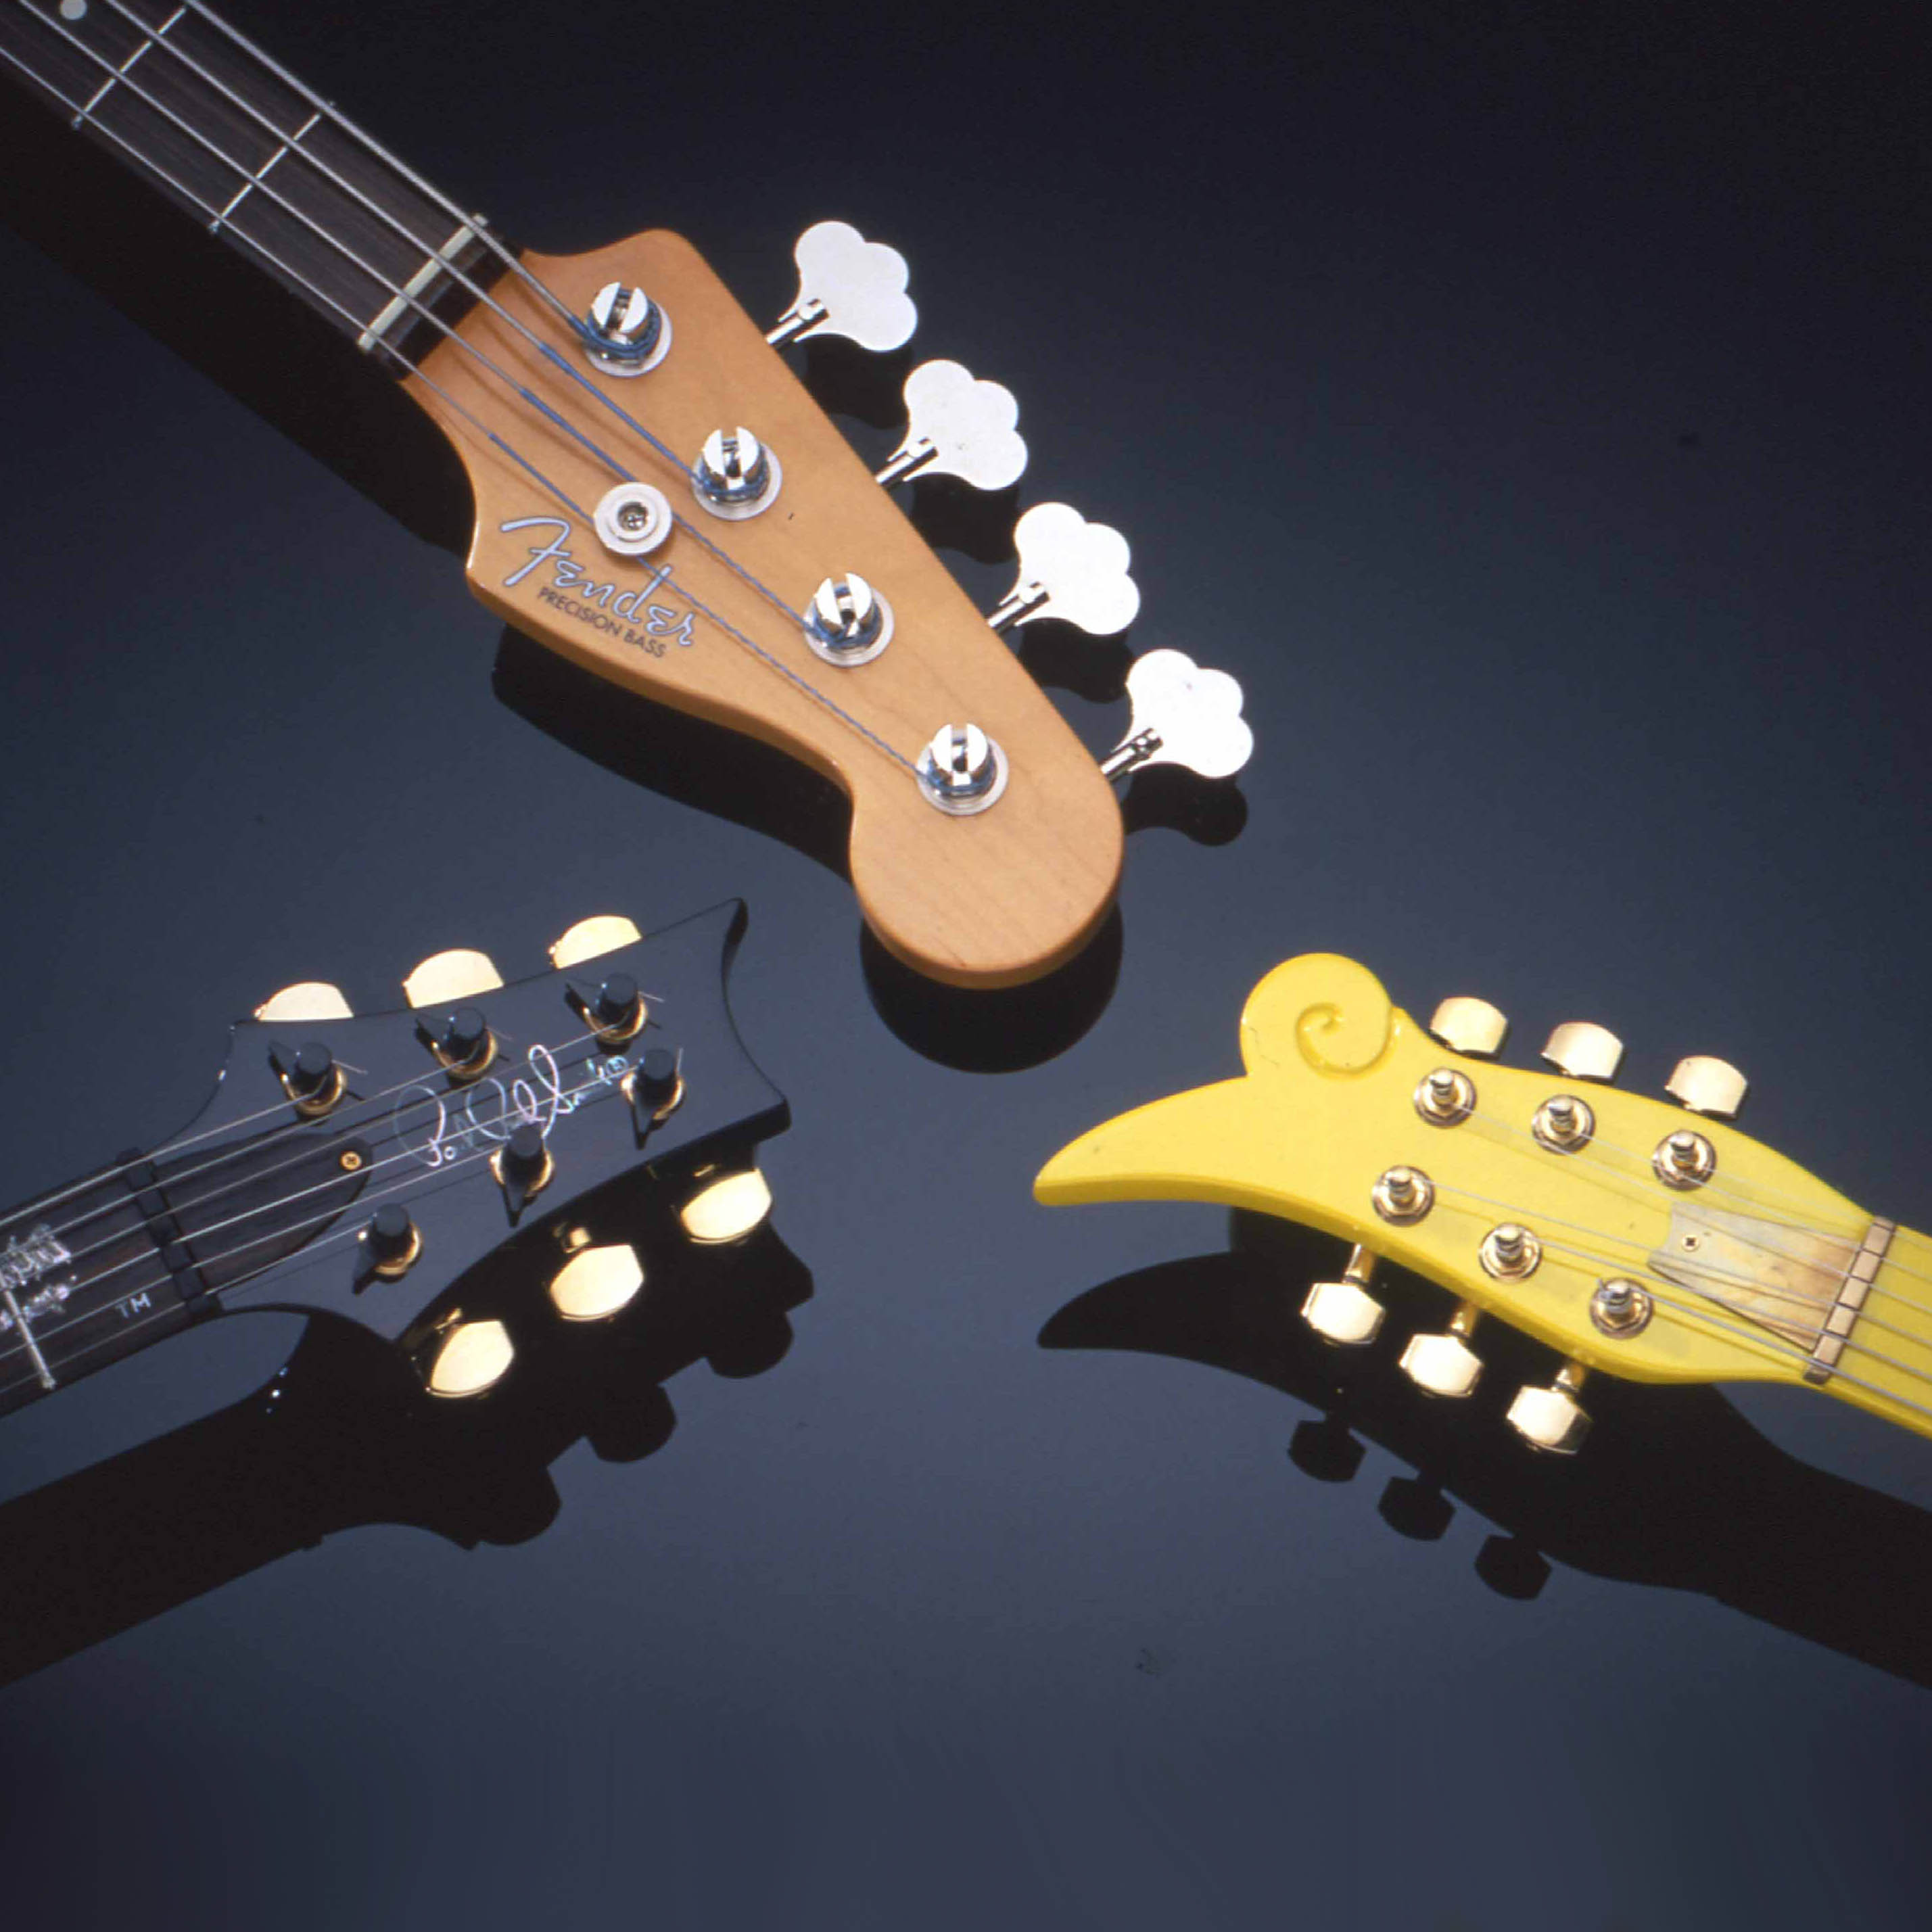 The Invention of the Electric Guitar | Lemelson Center for